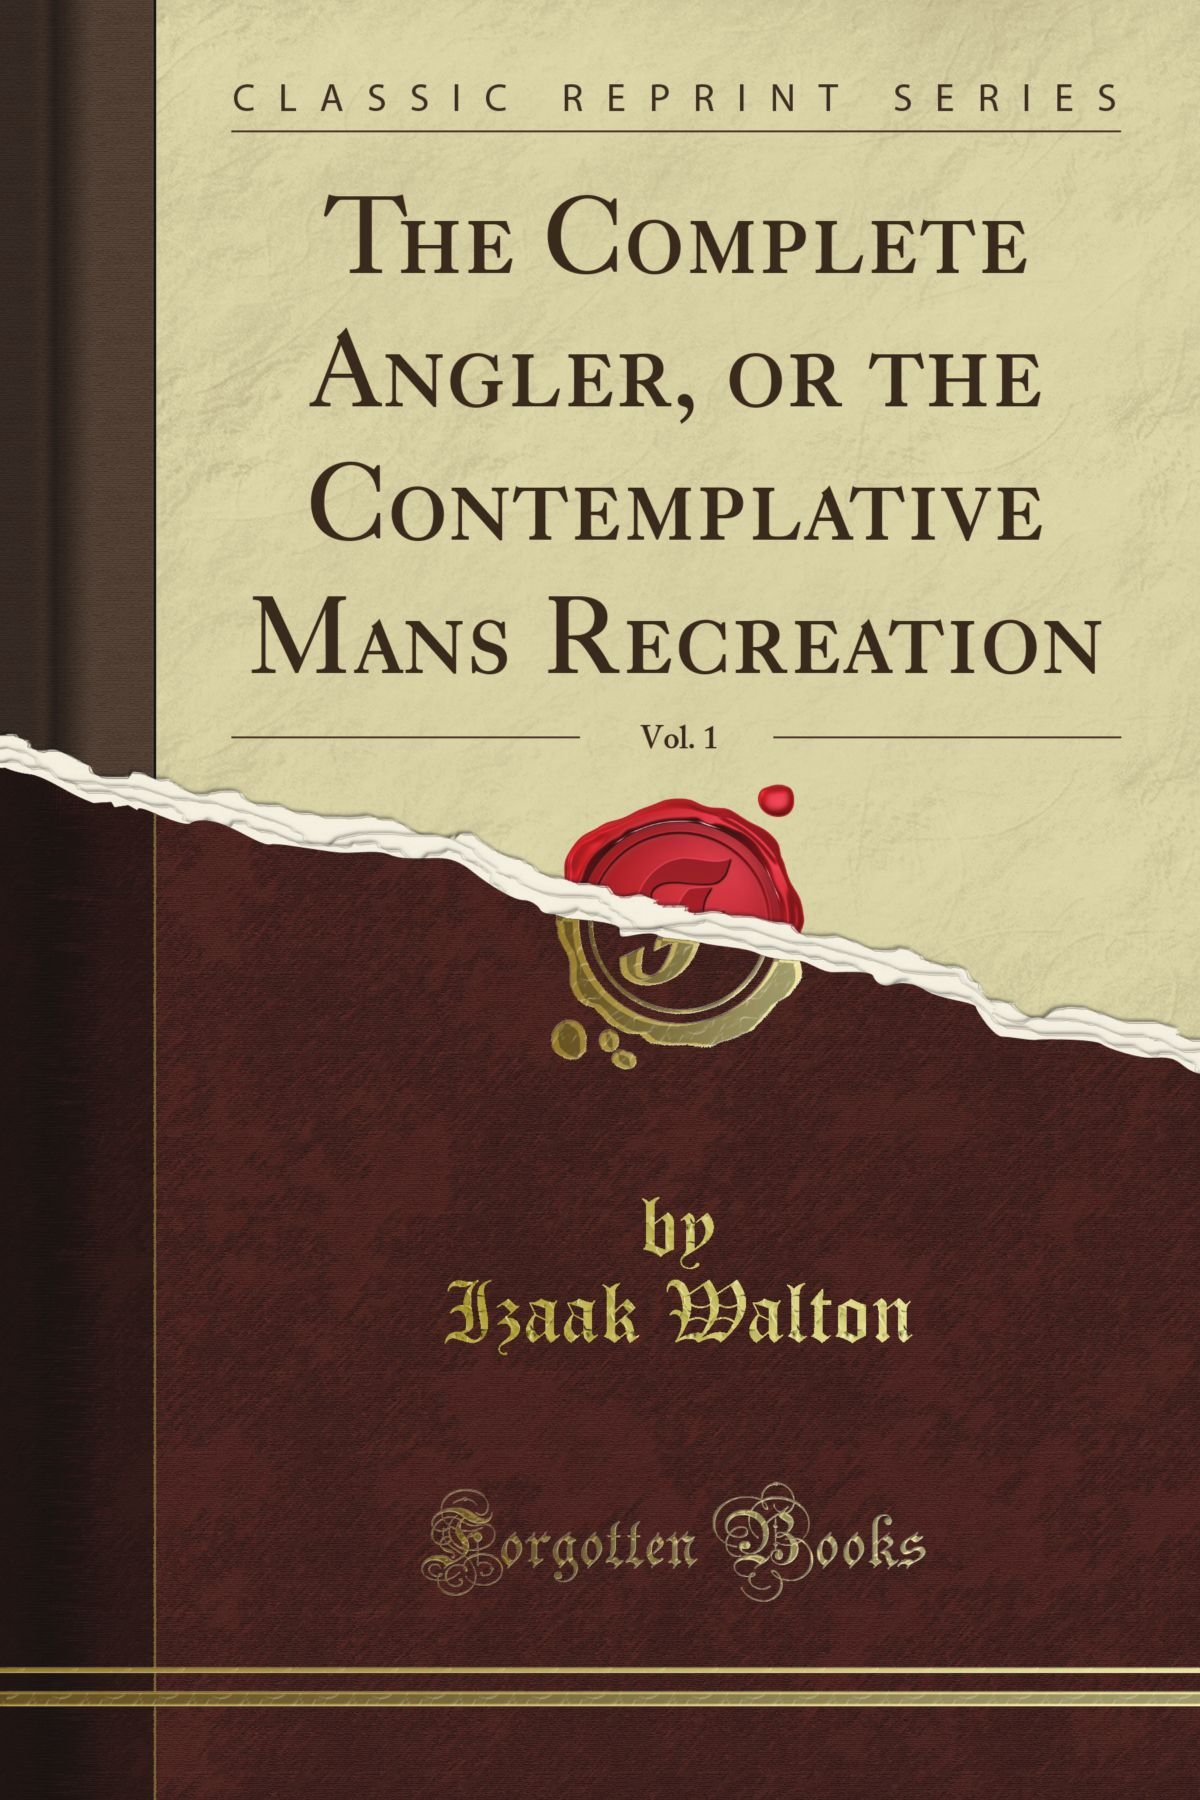 The Complete Angler, or the Contemplative Man's Recreation, Vol. 1 (Classic Reprint) ebook